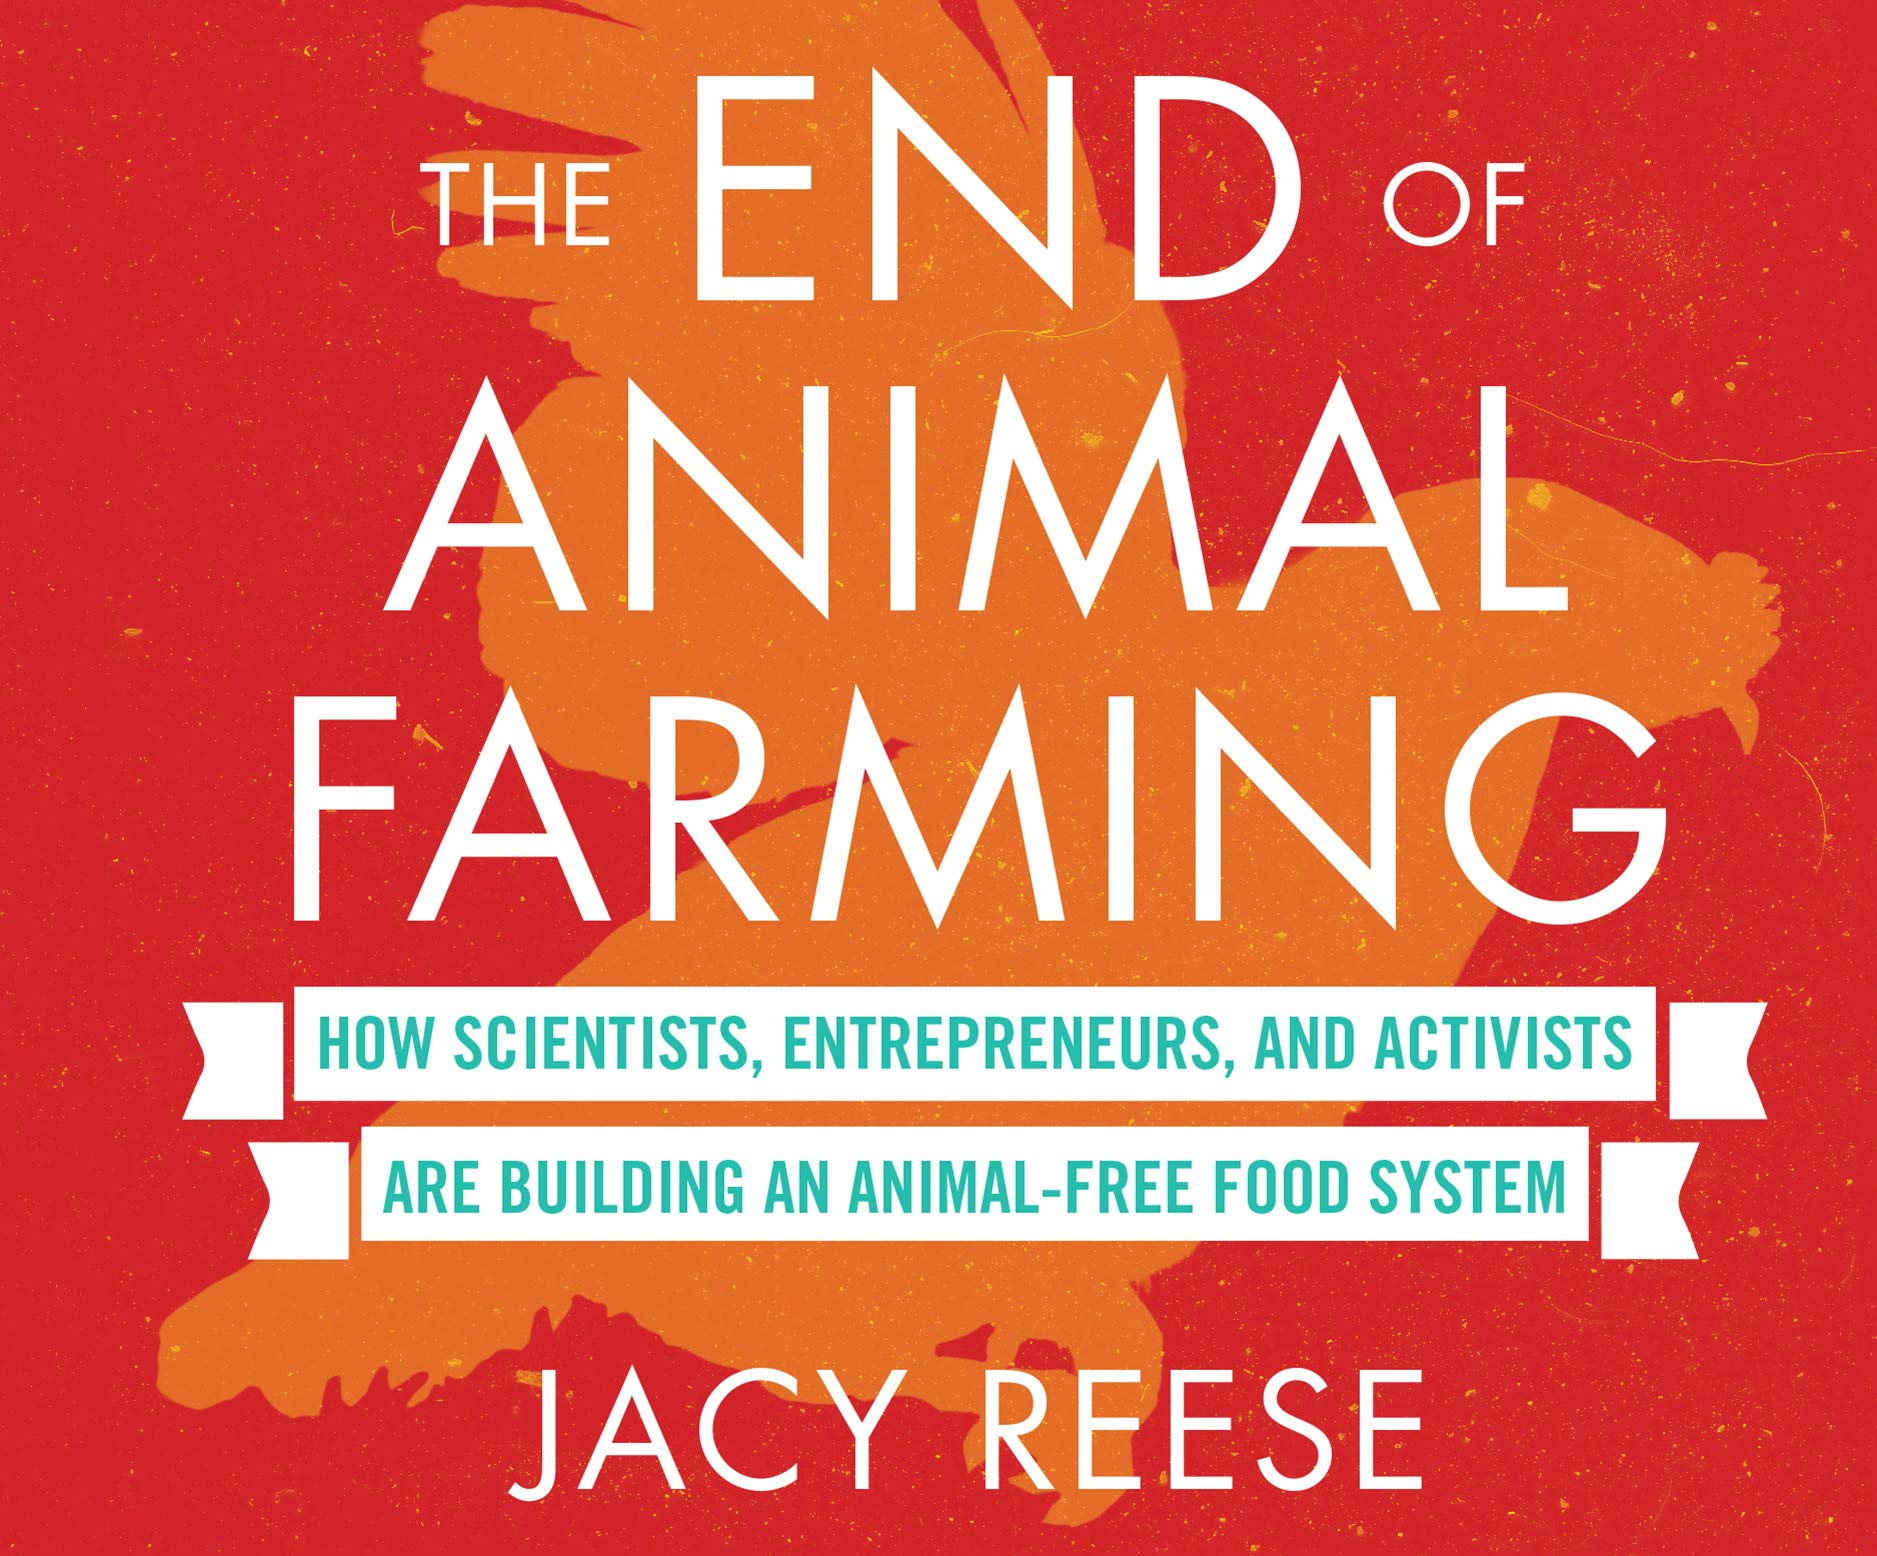 The End of Animal Farming: How Scientists, Entrepreneurs, and Activists Are Building an Animal-Free Food System